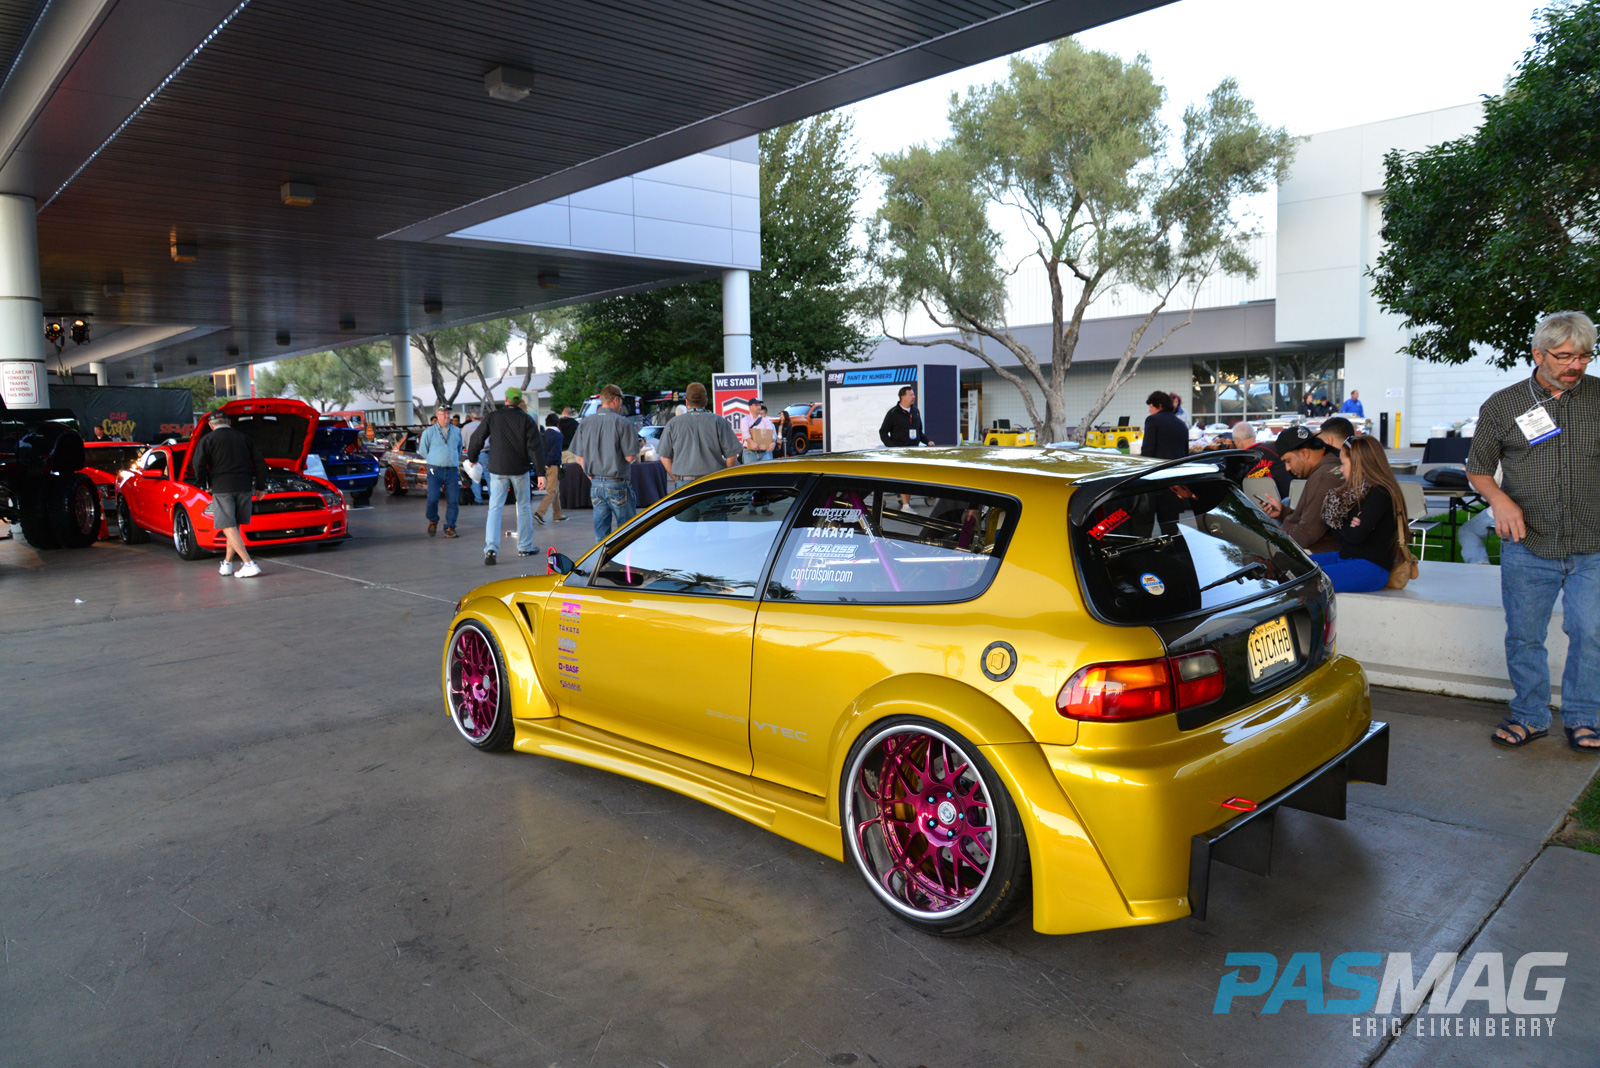 Pasmag Performance Auto And Sound Kenny Vinces Retires A Masterpiece 1992 Honda Civic Si